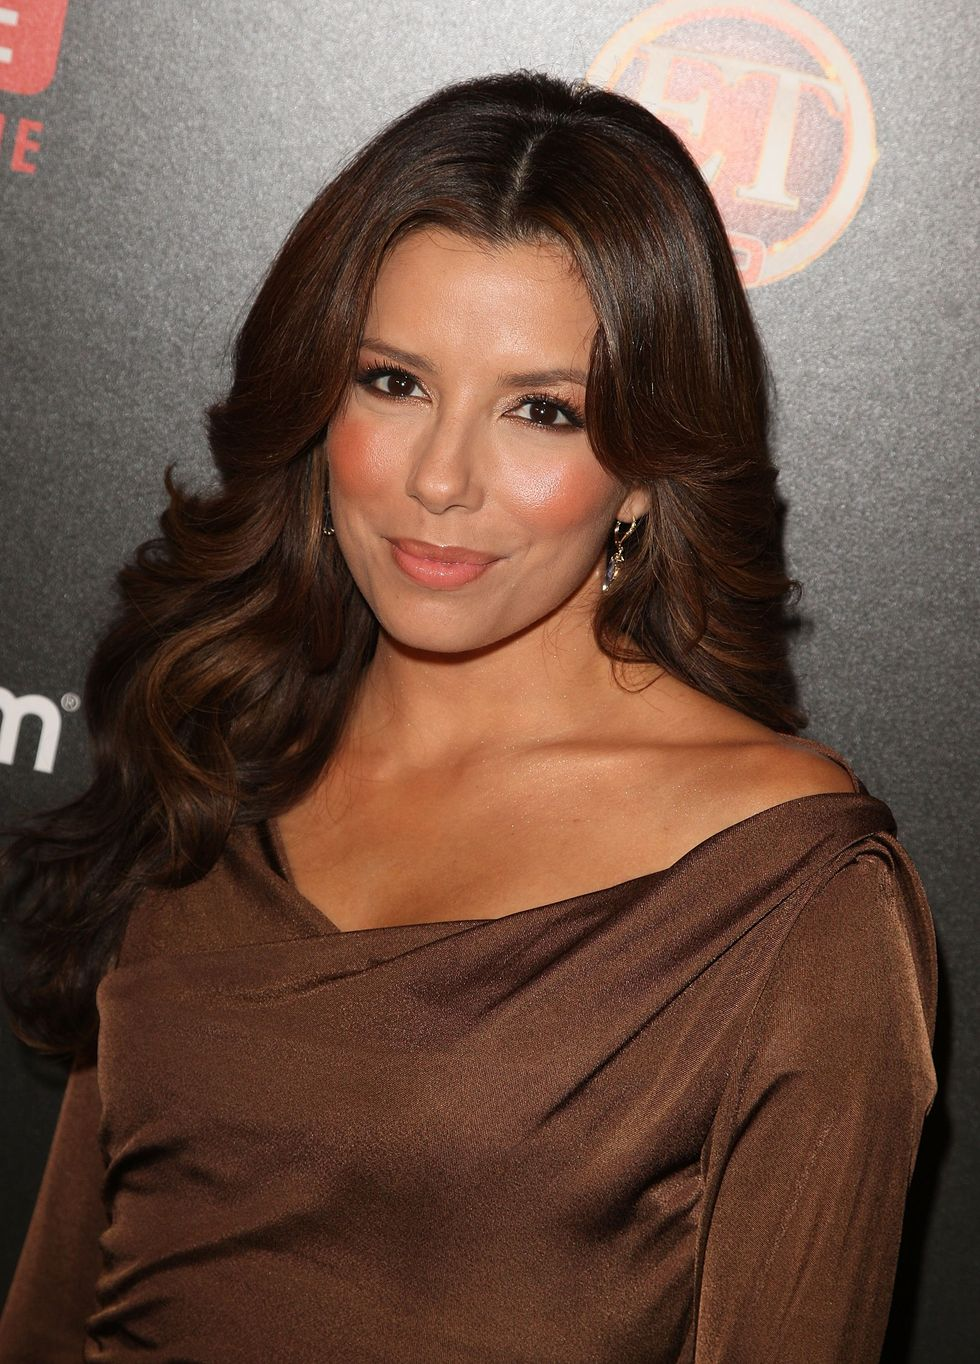 eva-longoria-tv-guides-sexiest-stars-party-in-hollywood-01